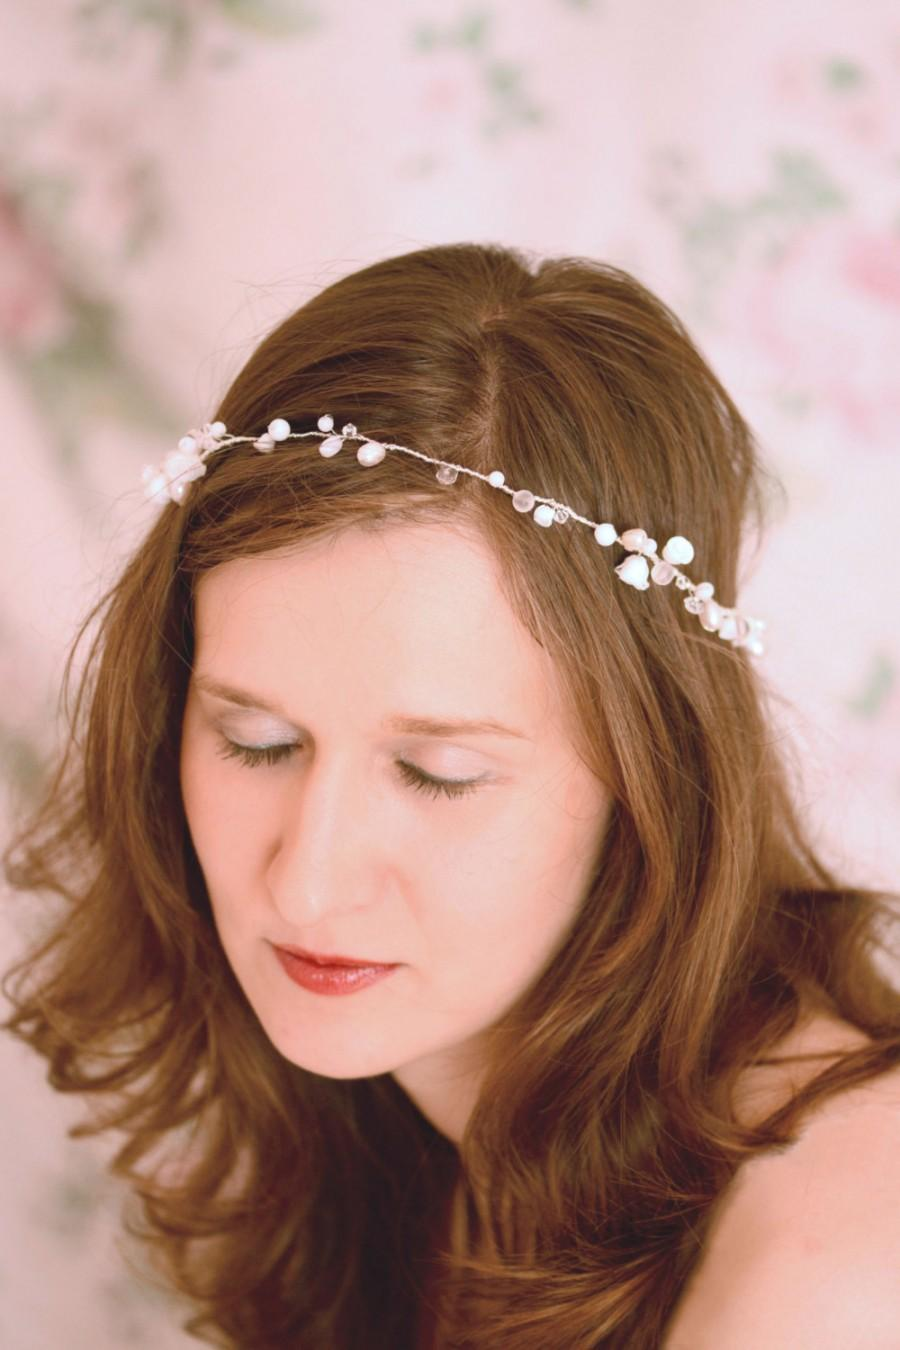 Свадьба - Bridal headpiece- Wedding hair accessory - Floral hair accessory - Bridal tiara - Bridal headband - Wedding headpiece - Bridal wreath